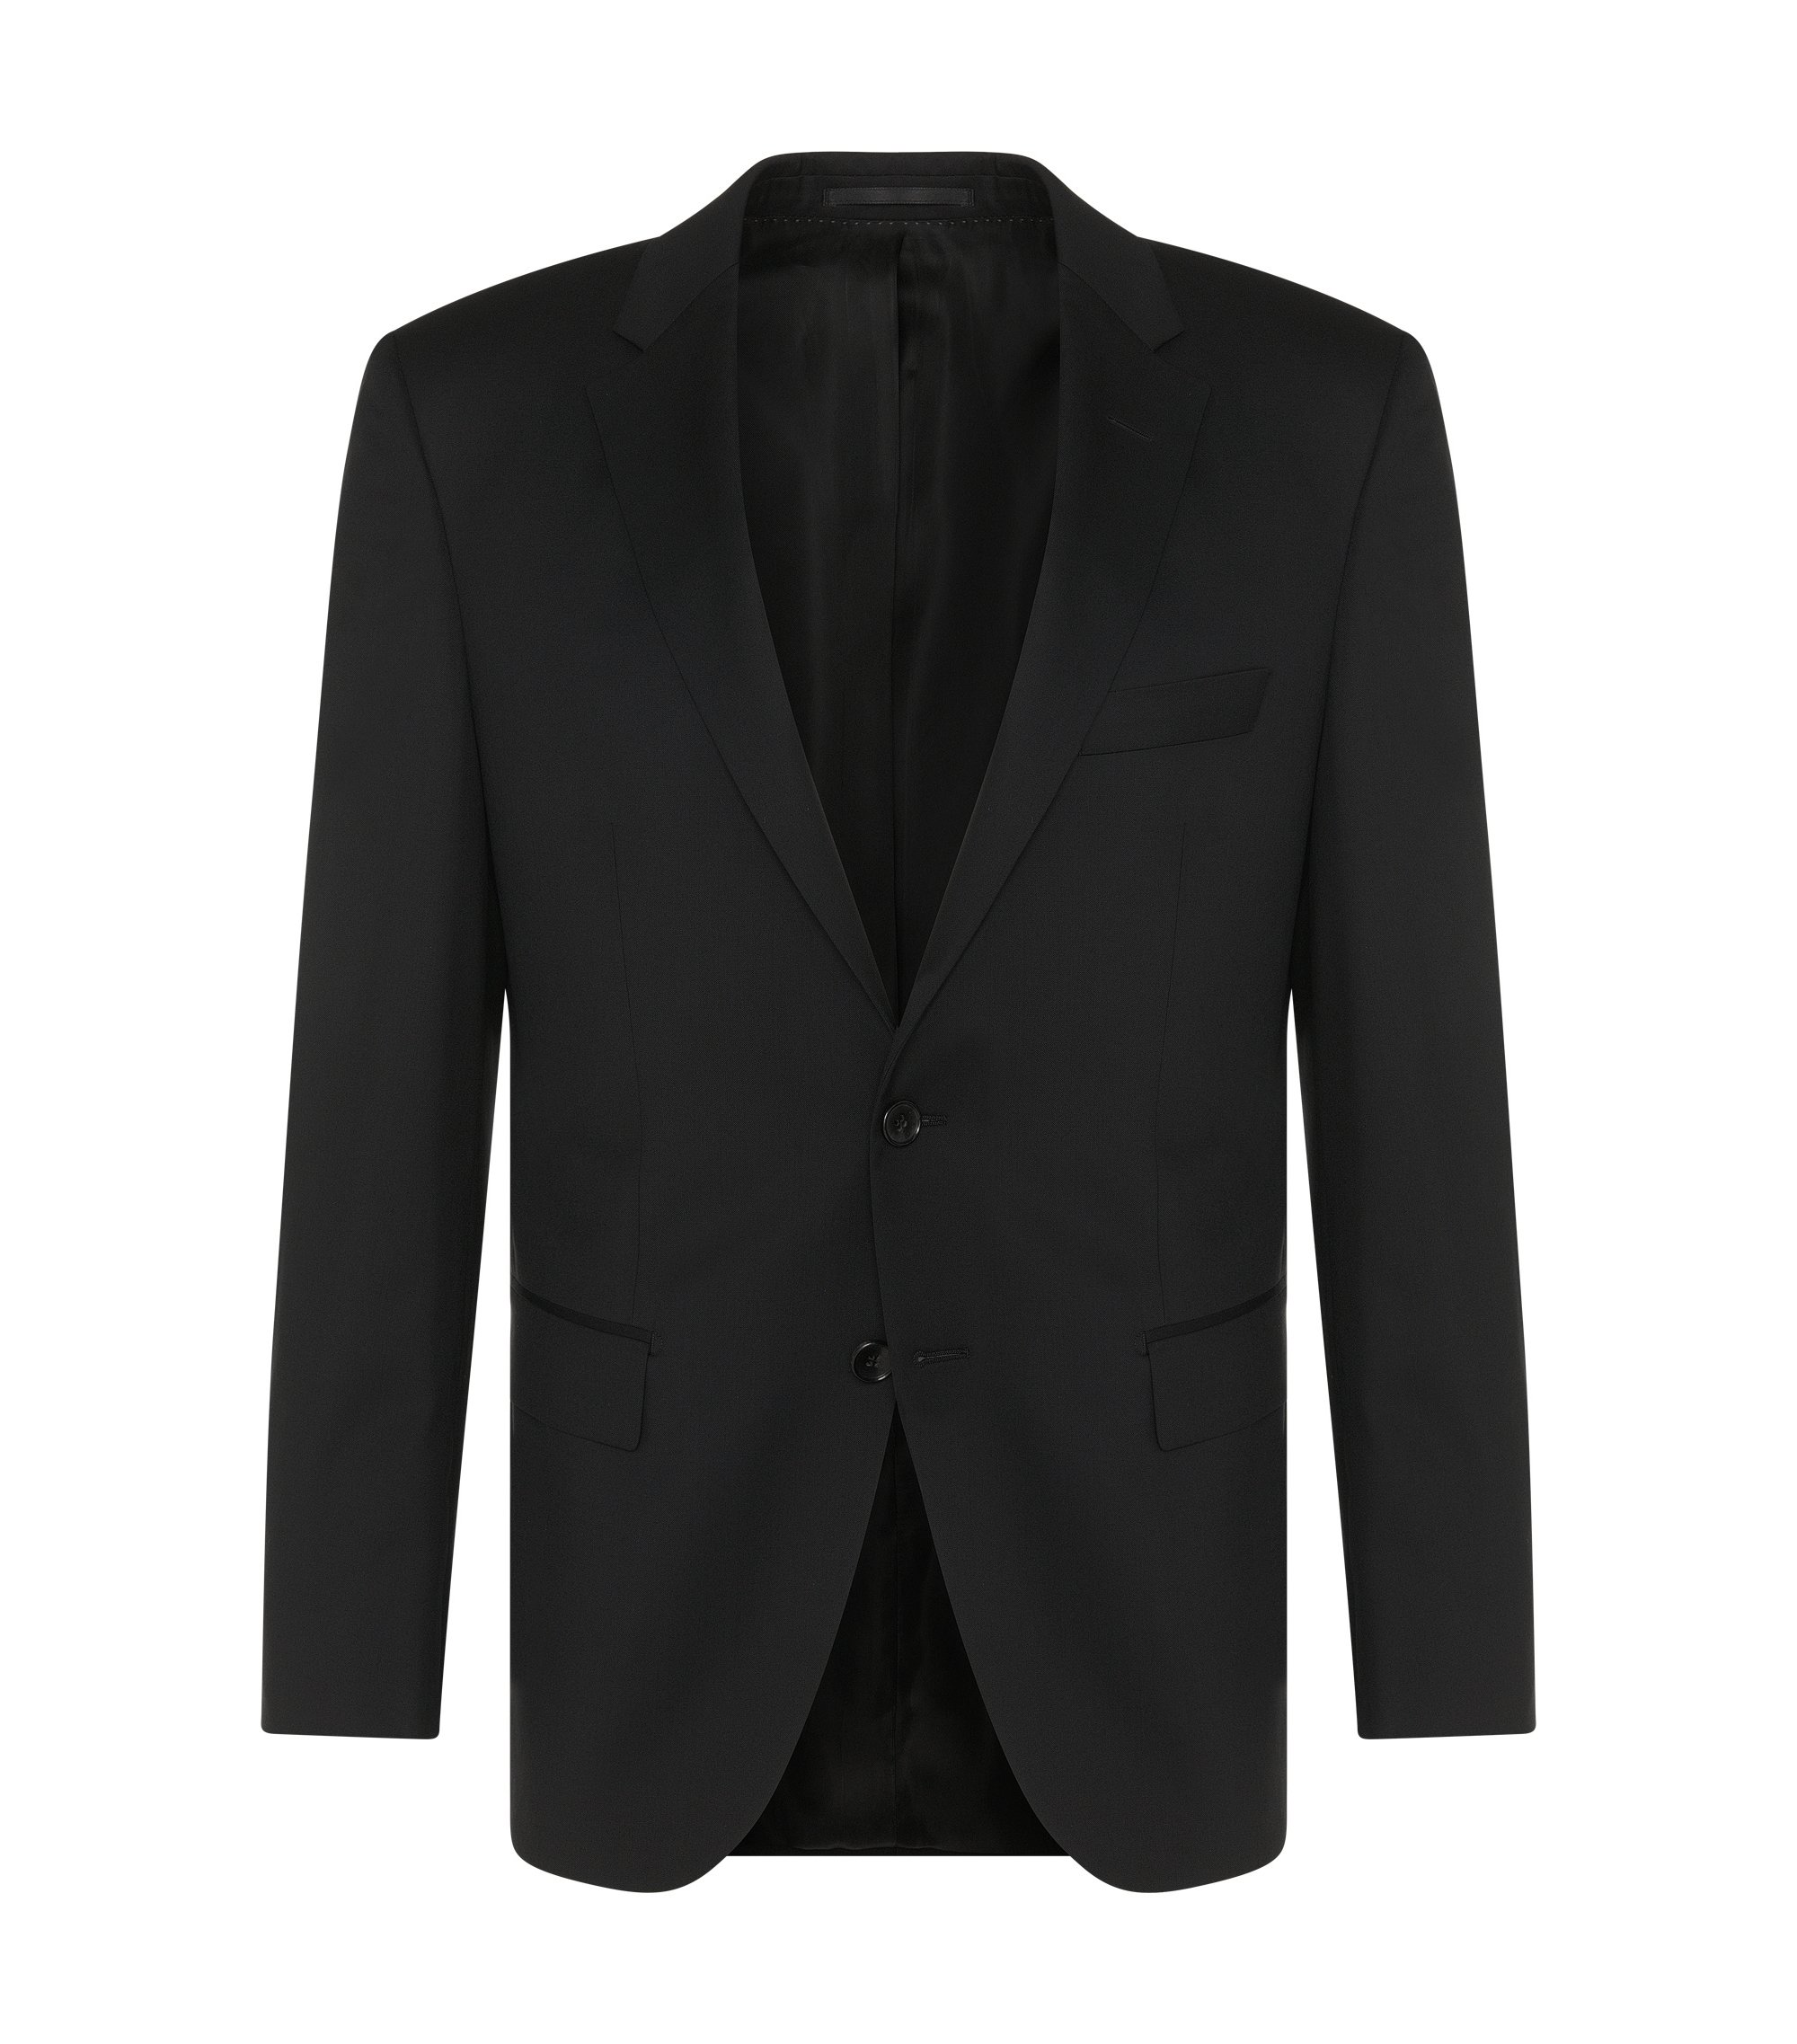 Veste de costume Regular Fit Tailored en laine vierge : « T-Howard4 », Noir